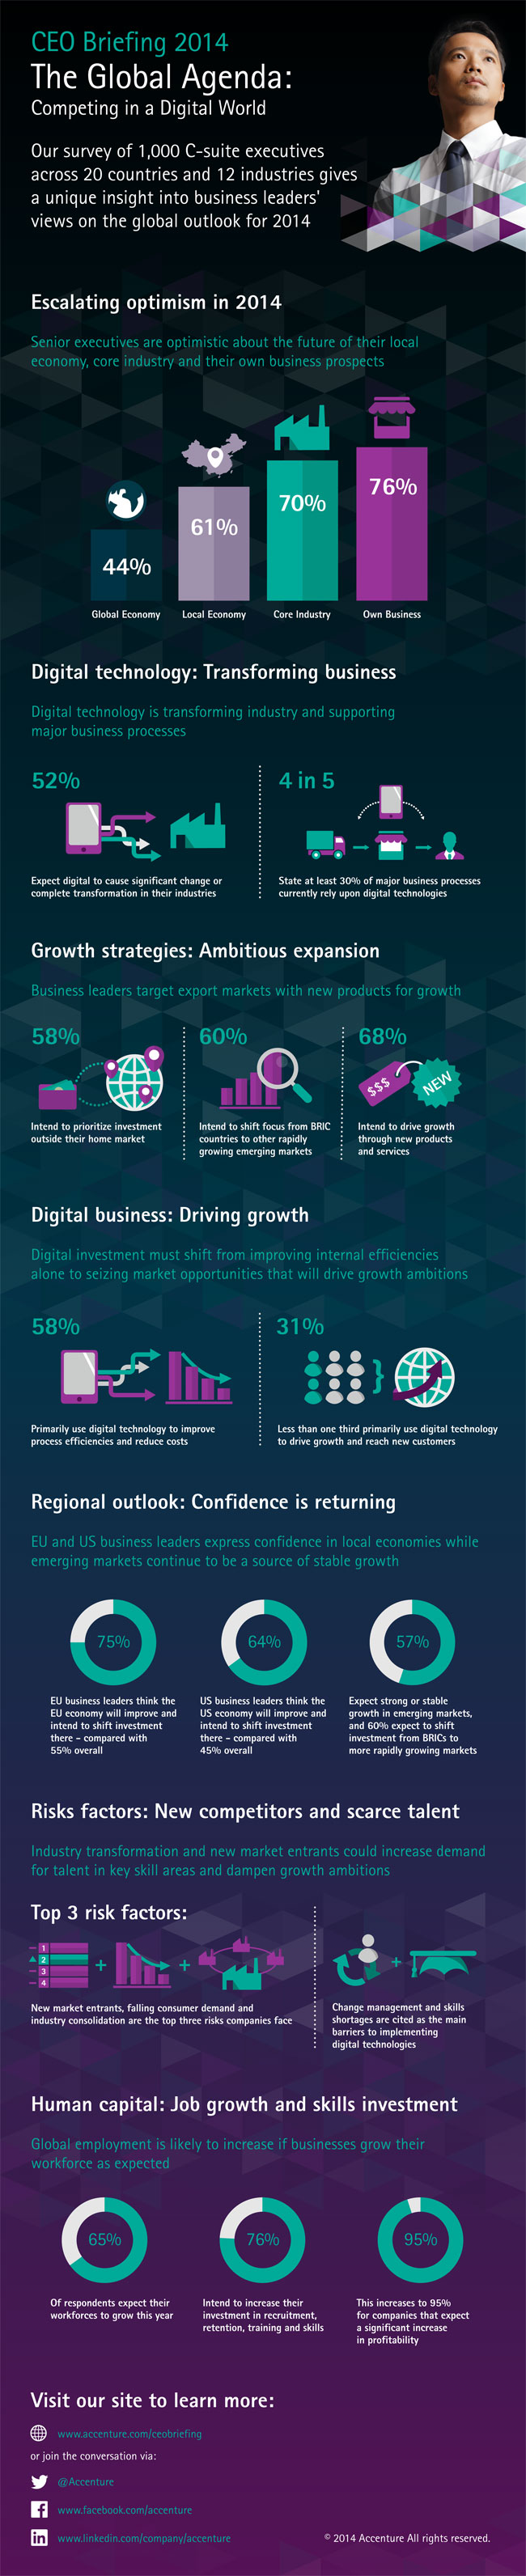 Accenture-Global-Agenda-CEO-Briefing-2014-Competing-Digital-World-Infographic